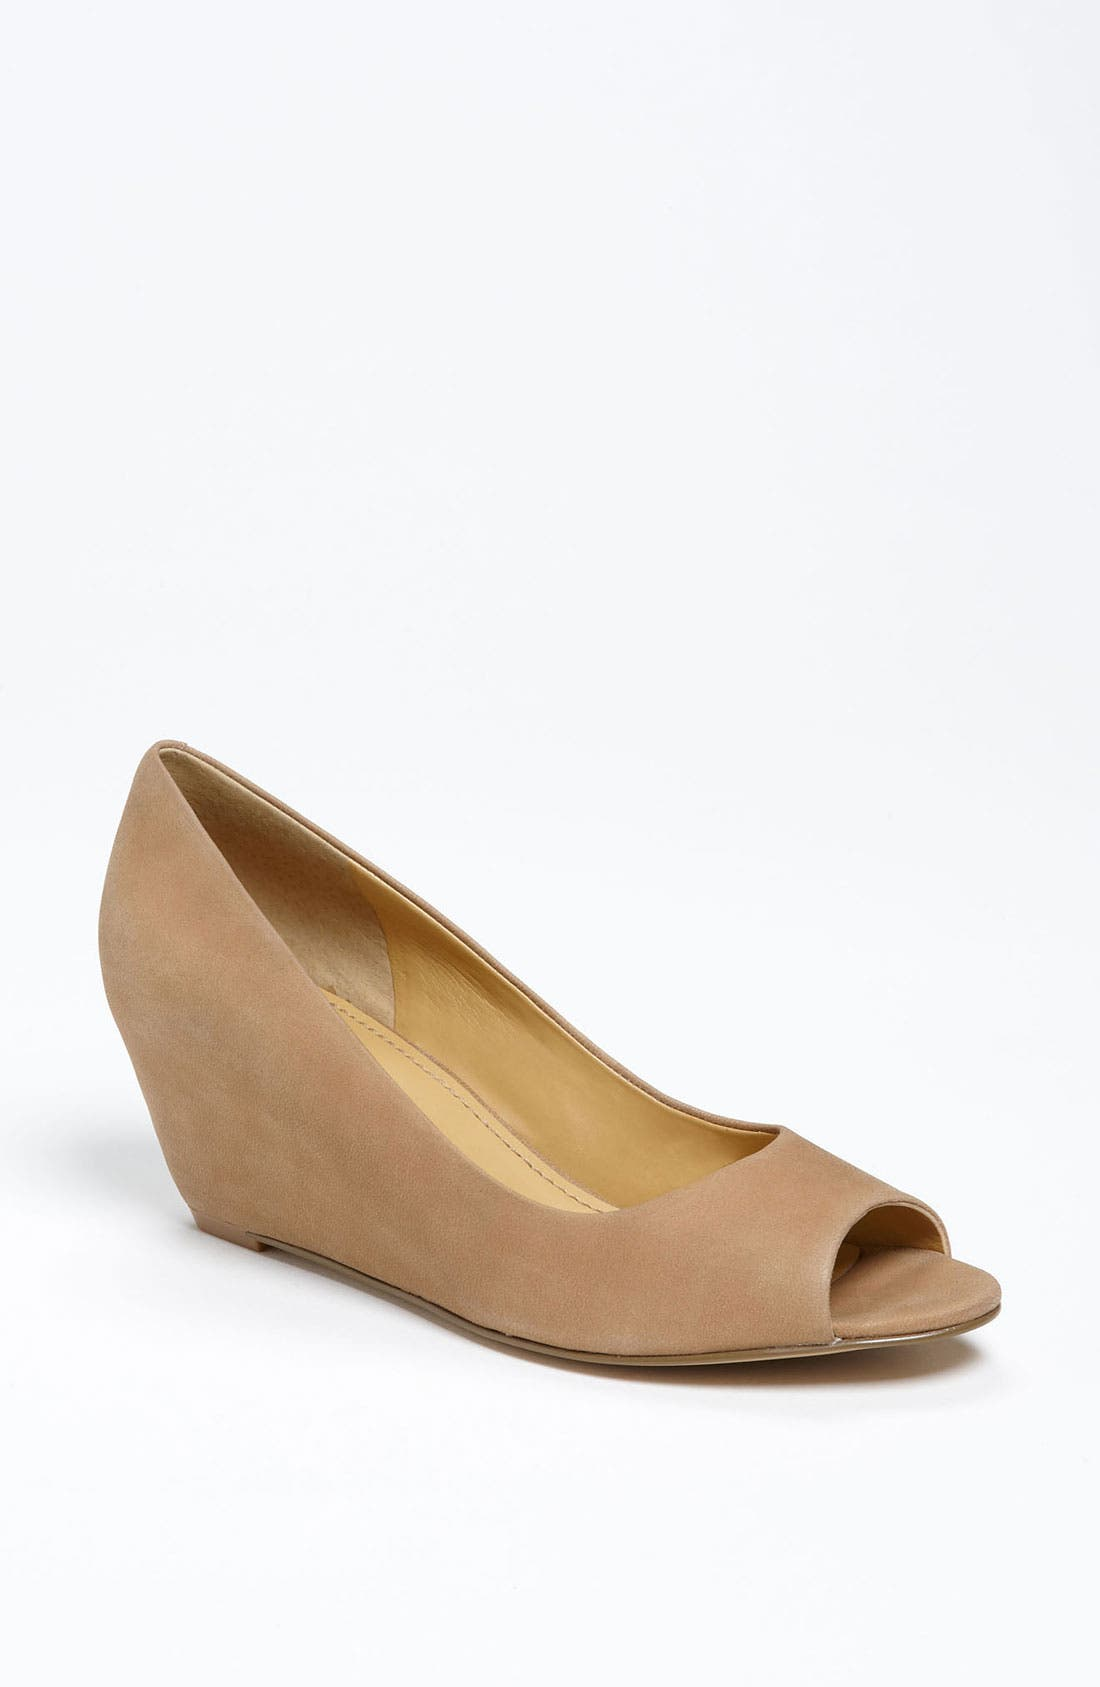 Alternate Image 1 Selected - Nine West 'Mymoon' Pump